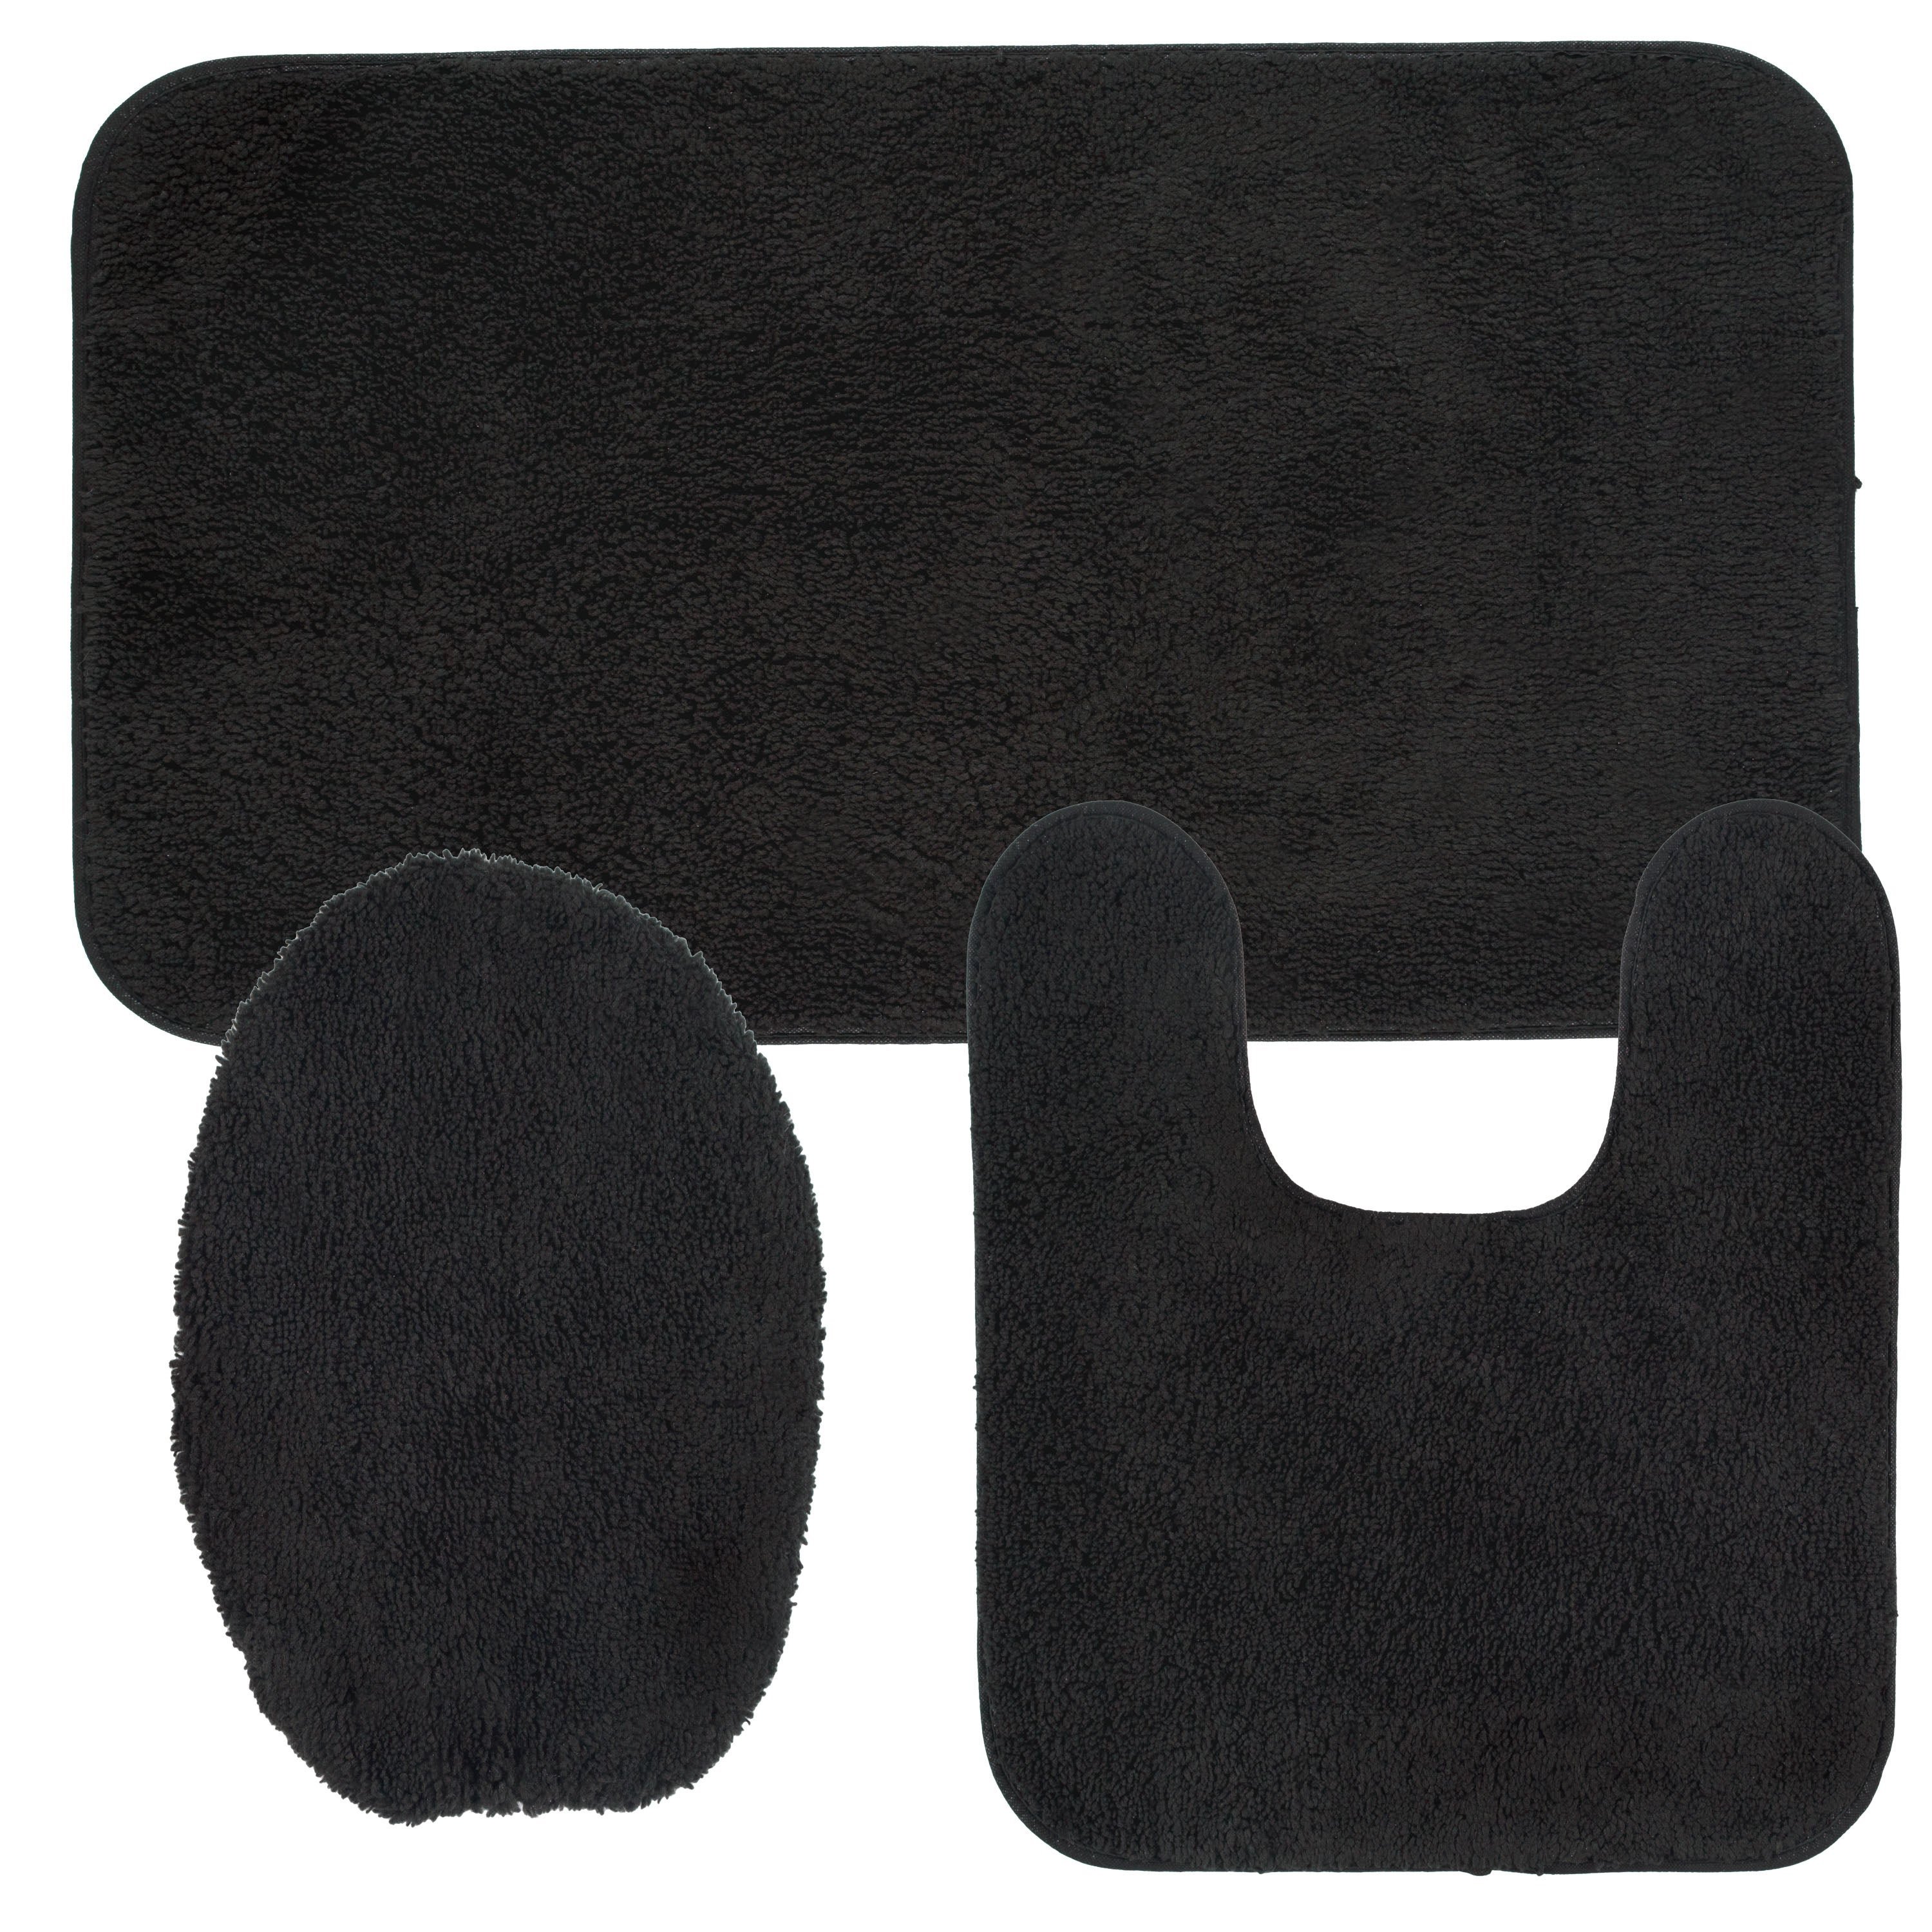 Mohawk Cascade Bath Rug Set Contains 1 8x2 6 8x1 8 And 4 5x1 5 Toilet Lid Cover X 2